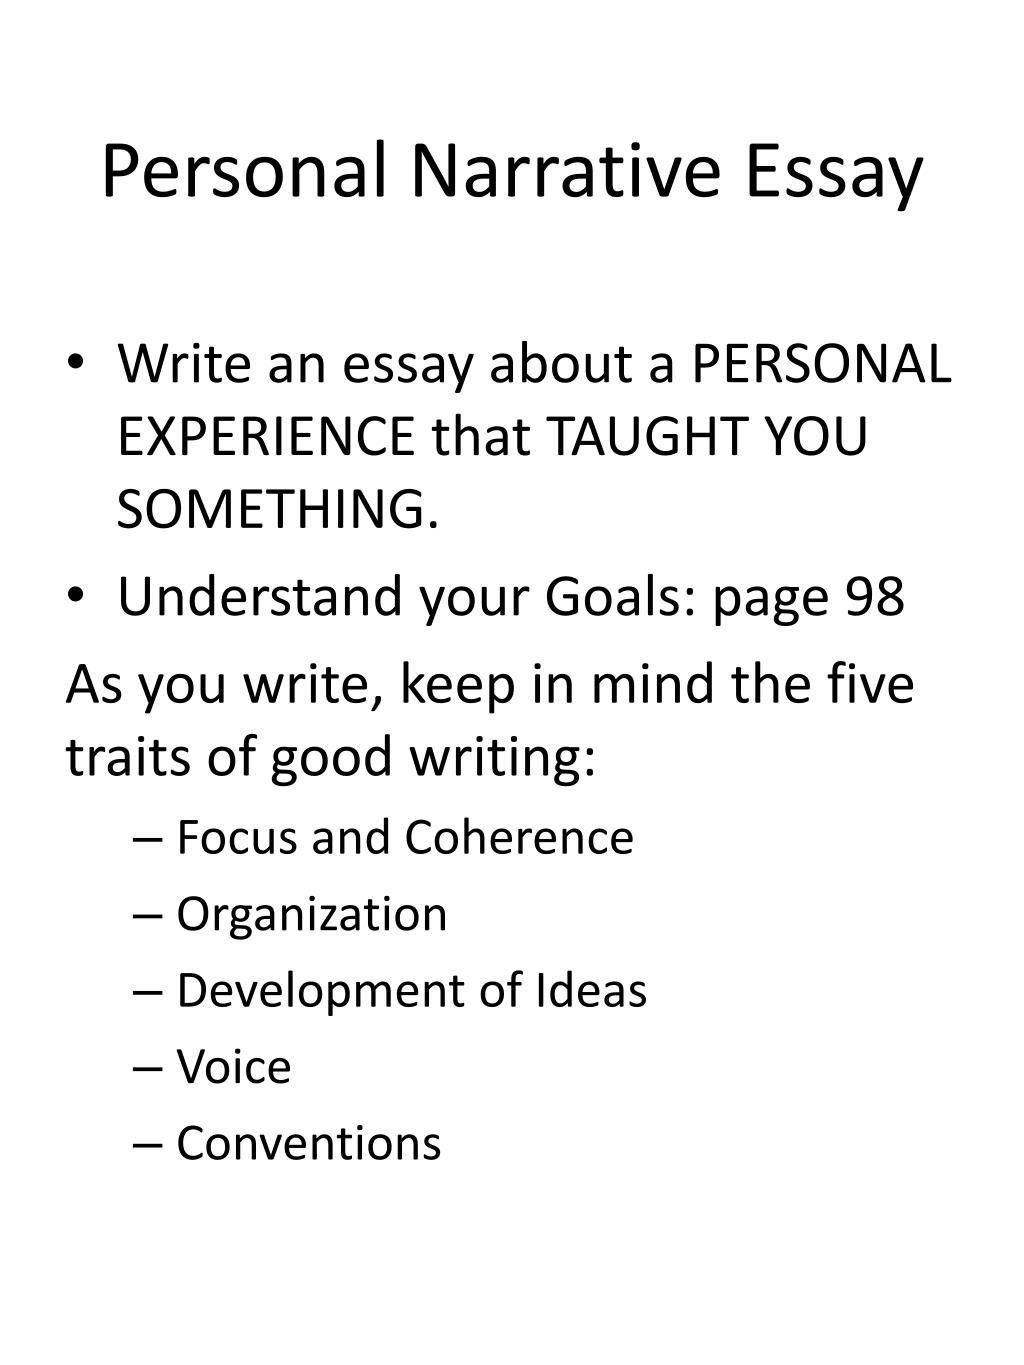 008 Striking Personal Narrative Essay High Resolution  Structure Sample School PromptLarge